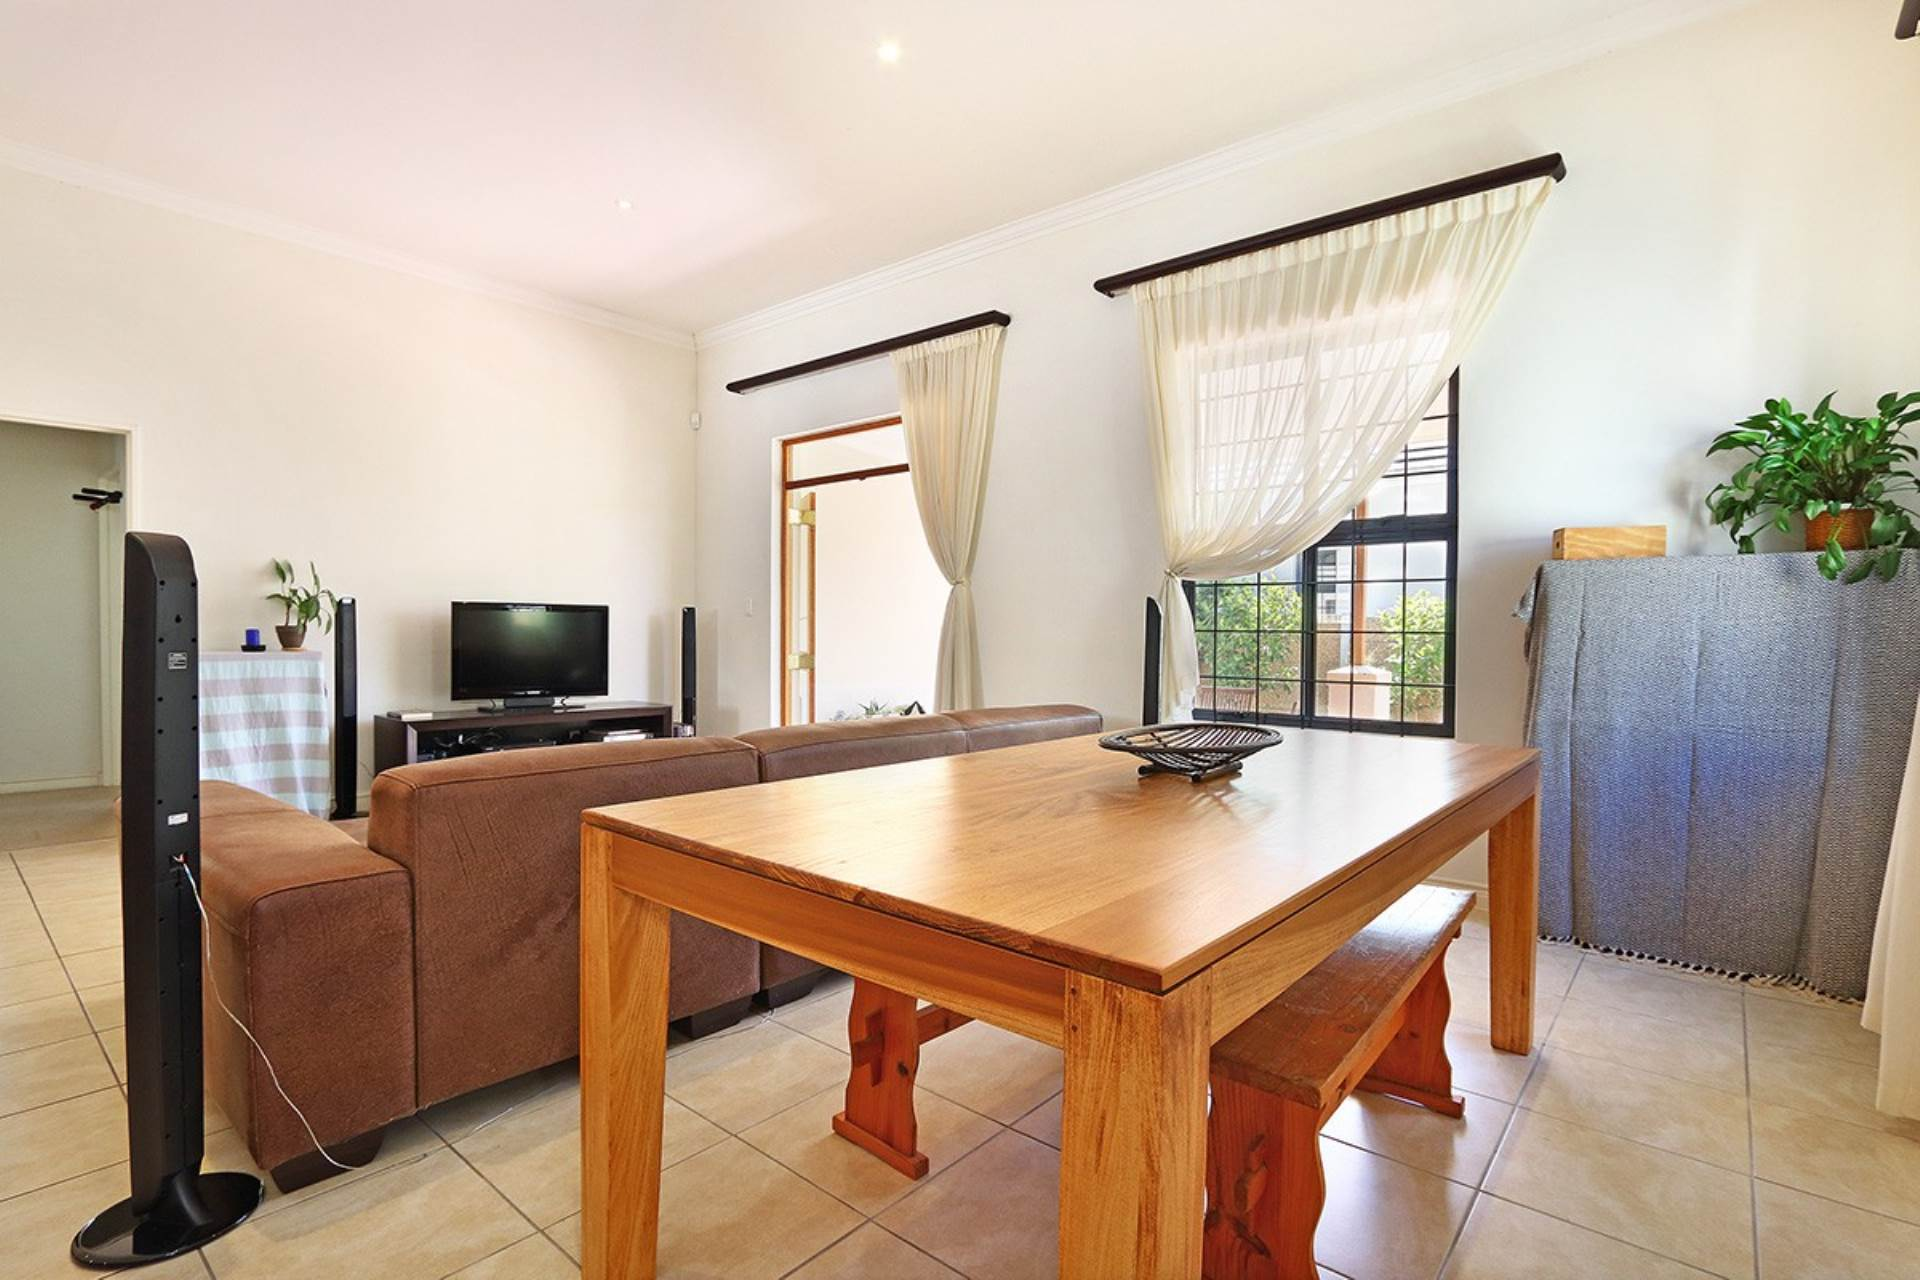 Townhouse For Sale In Royal Ascot Milnerton Western Cape R 3295000